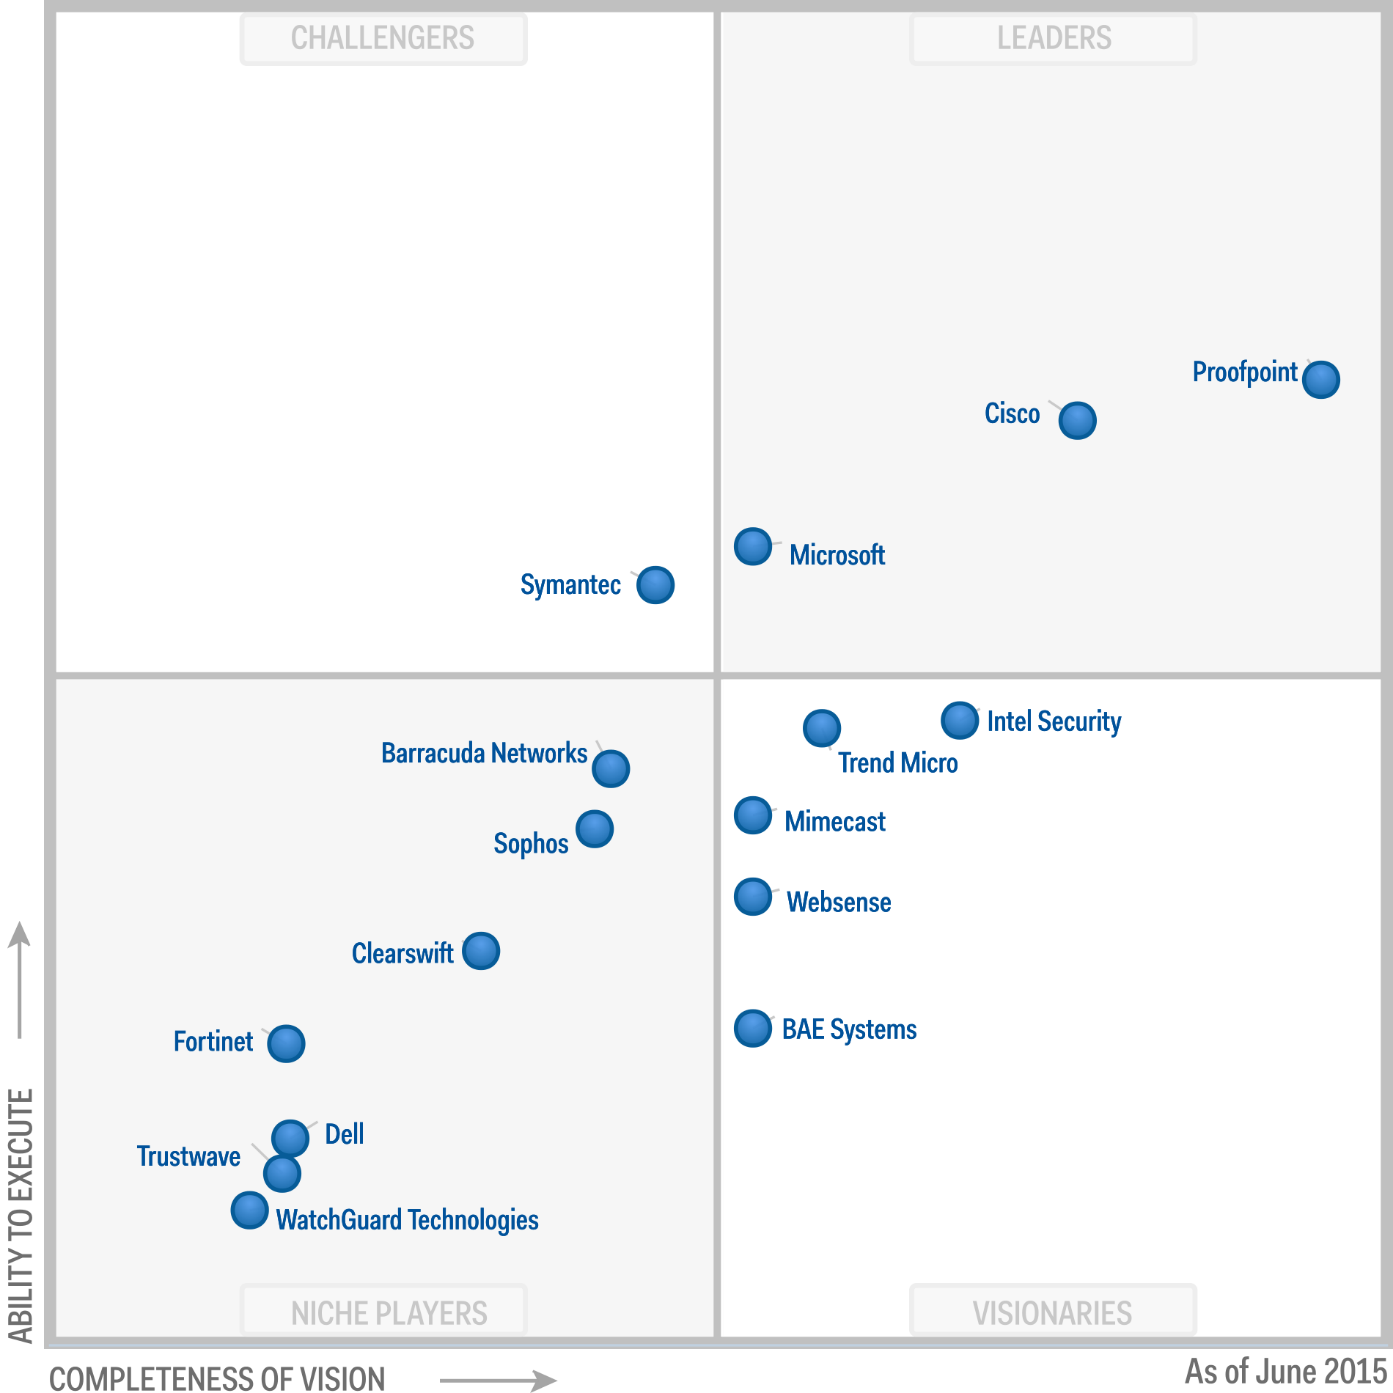 Magic Quadrant for Secure Email Gateways 2015 (G00268427)